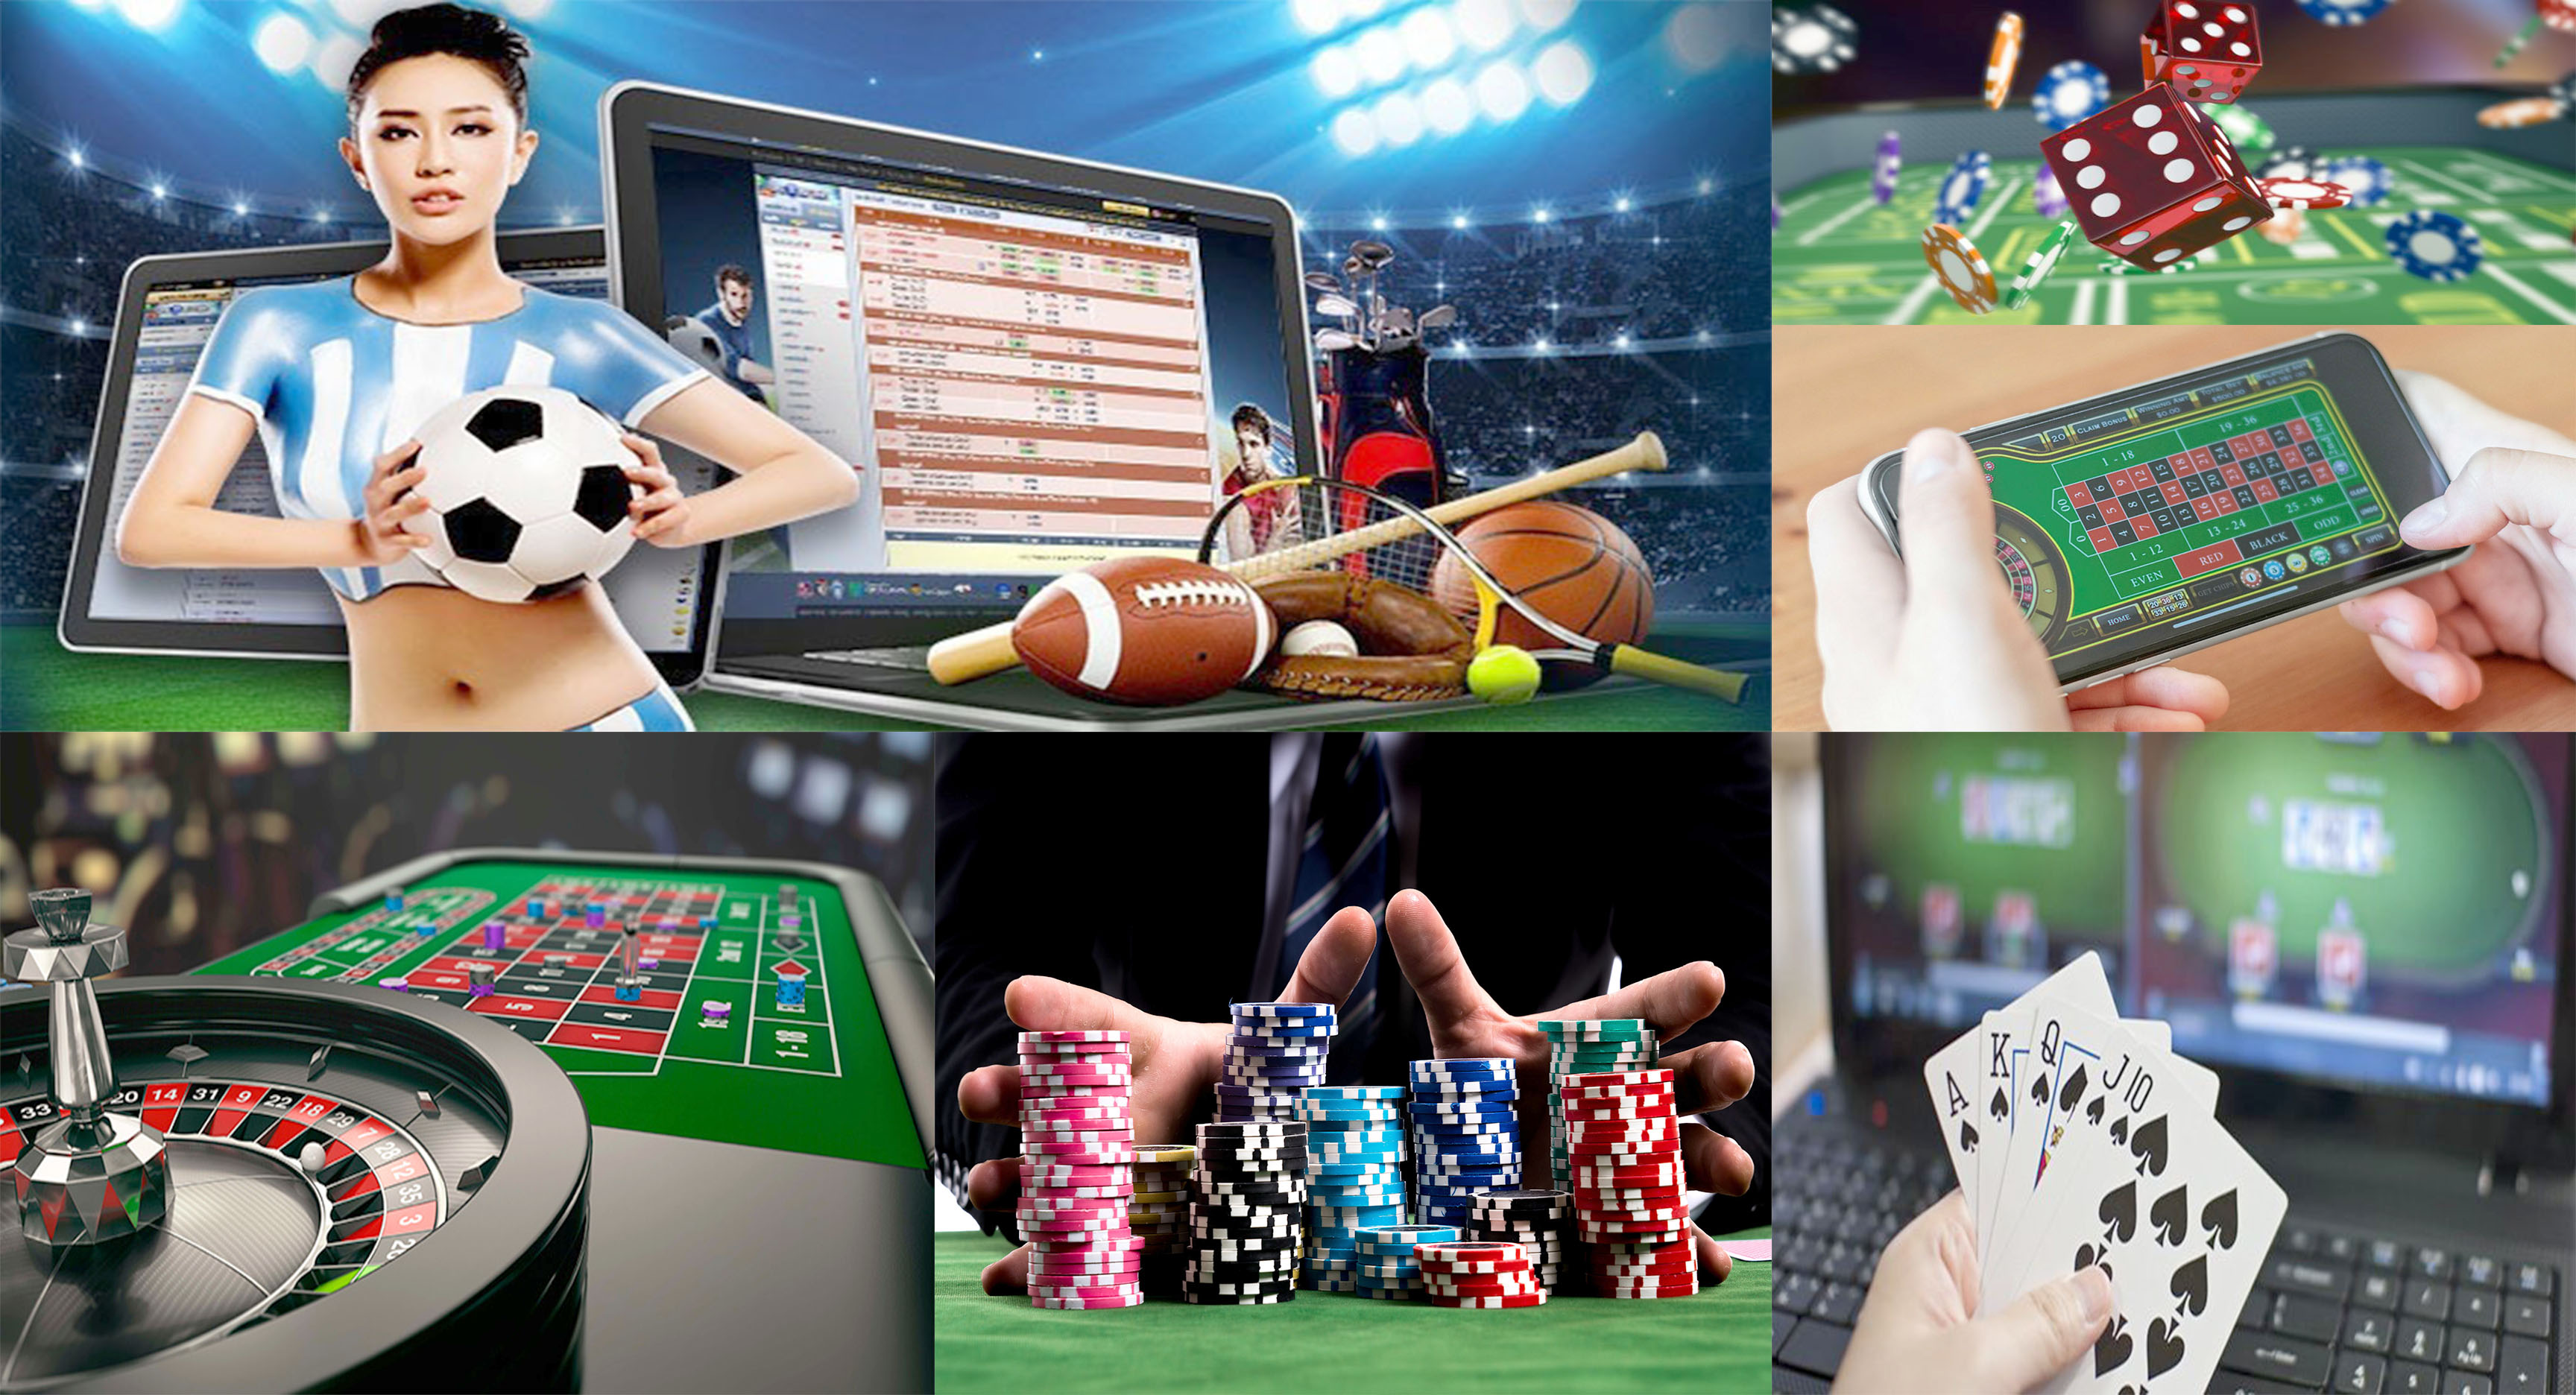 Rank Your Website with 30 Days DF 60 Gambling, Poker, Betting, Casino, Slot PBN Backlinks Manually